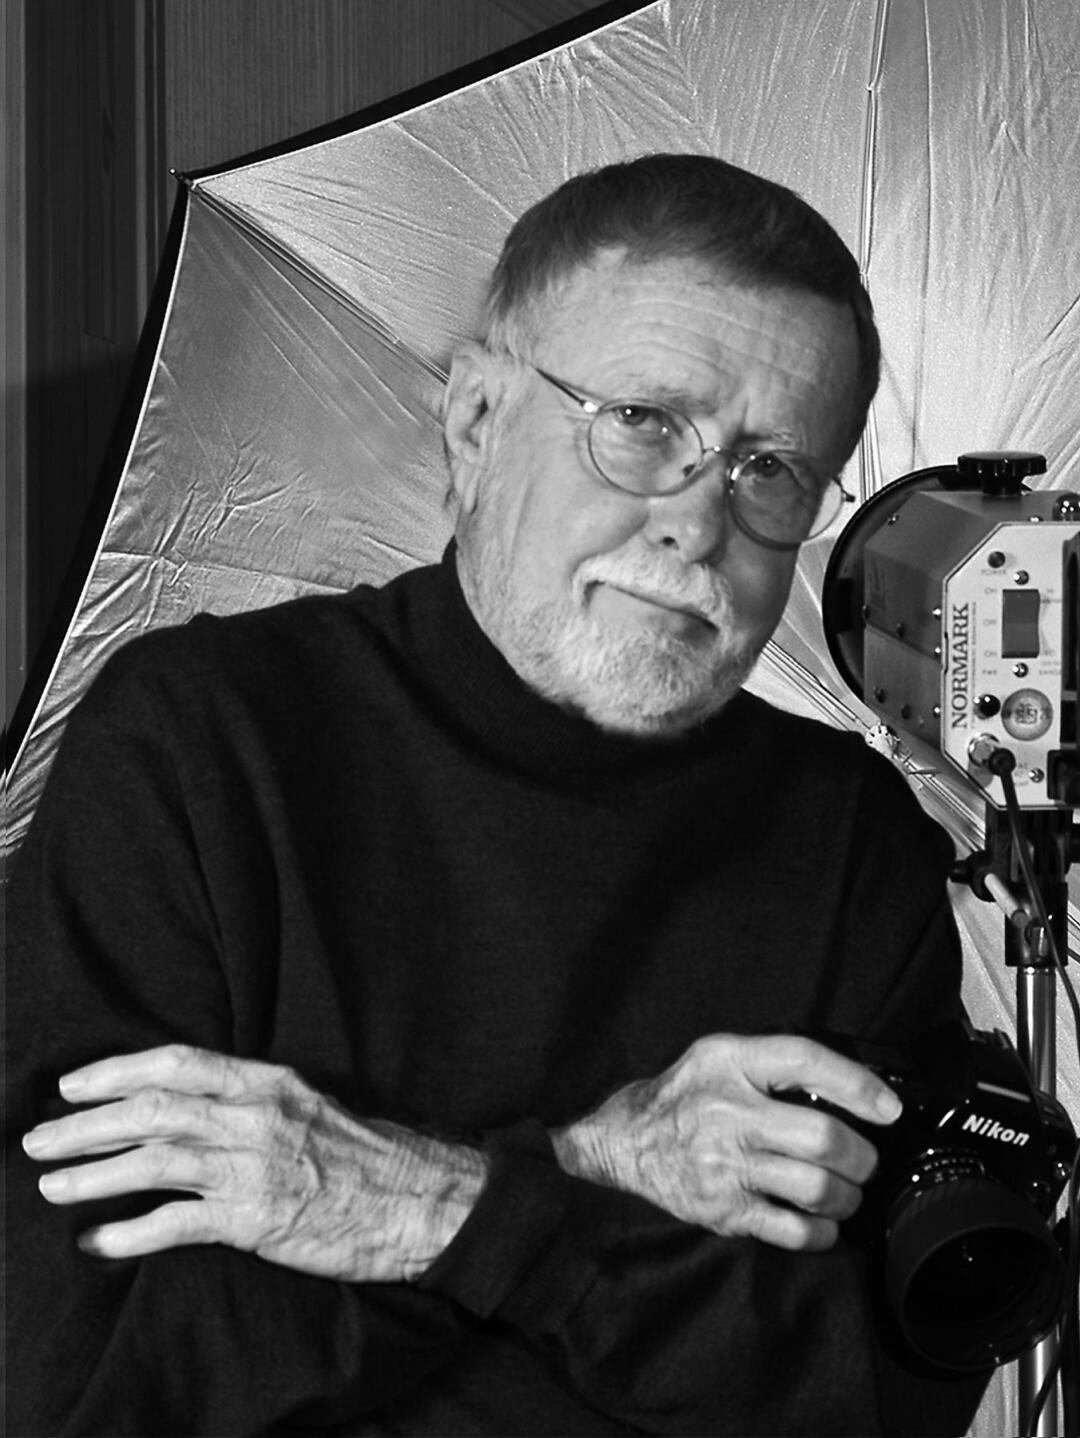 Art Myers, a physician-turned-photographer, died on June 9 surrounded by family in his Point Loma home. He was 89.